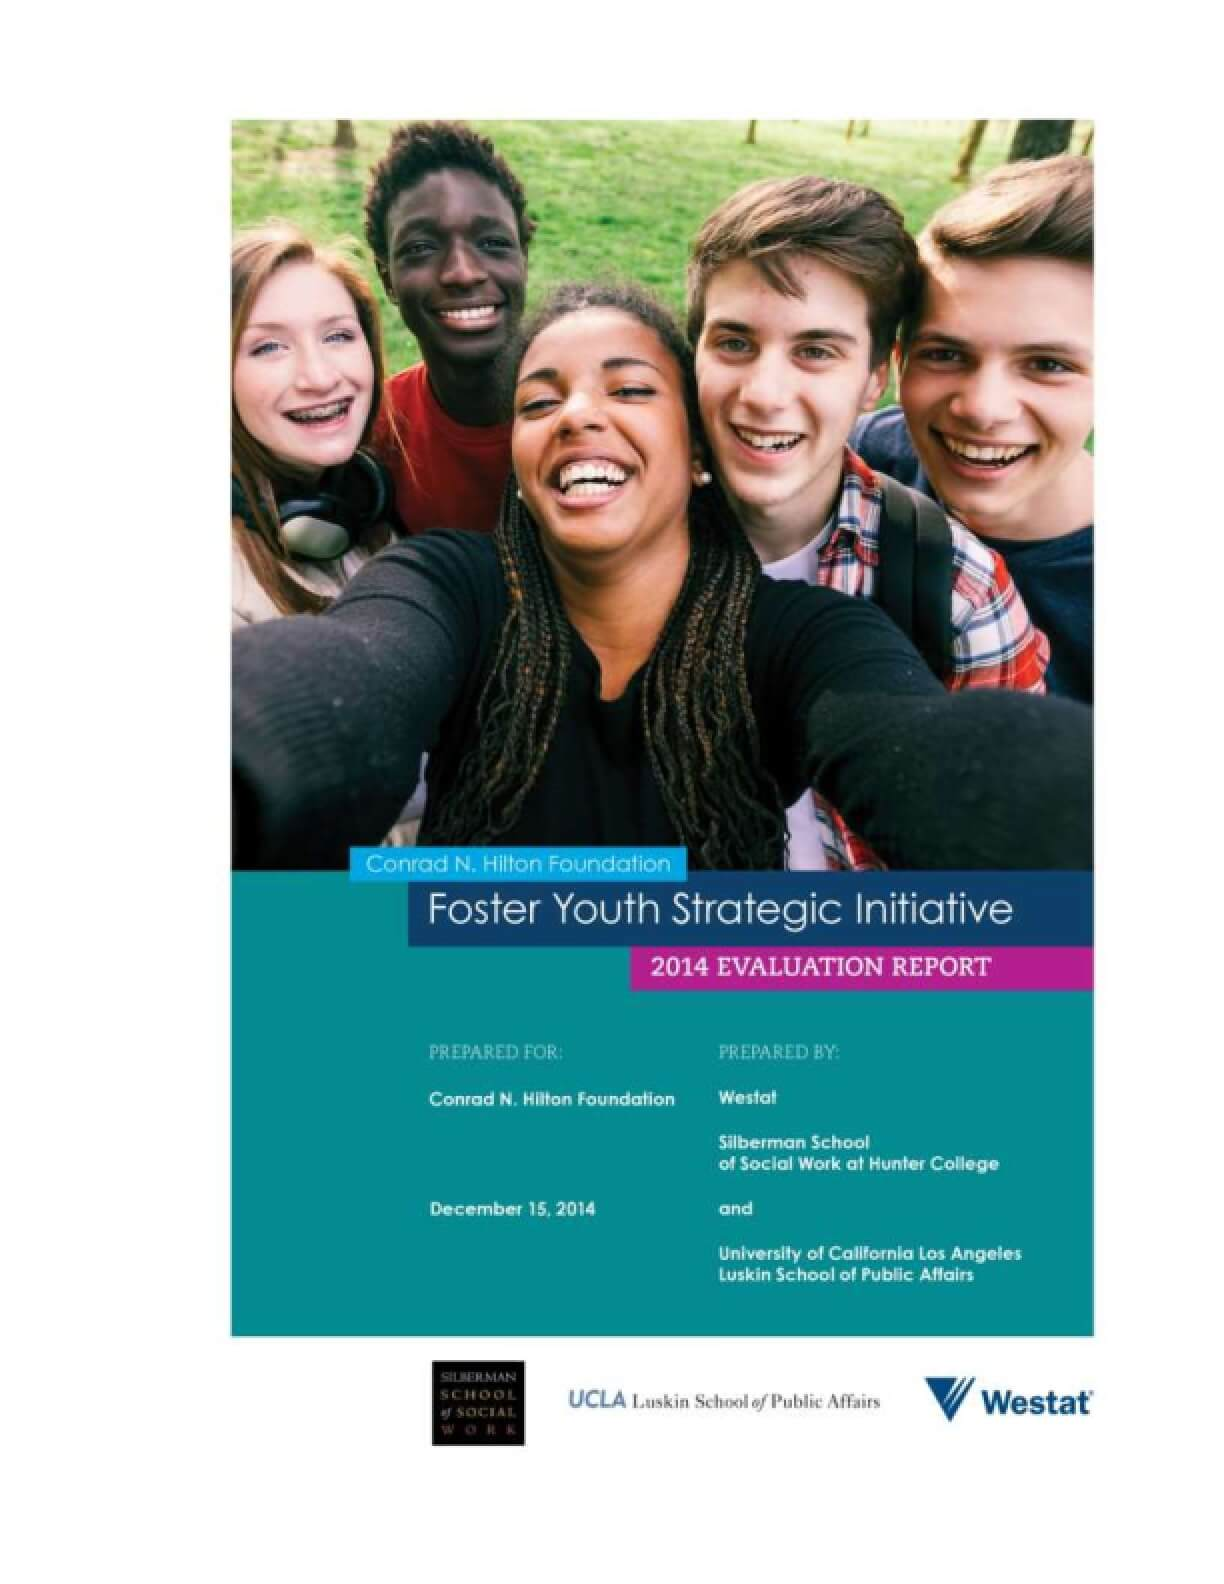 Foster Youth Strategic Initiative 2014 Evaluation Report